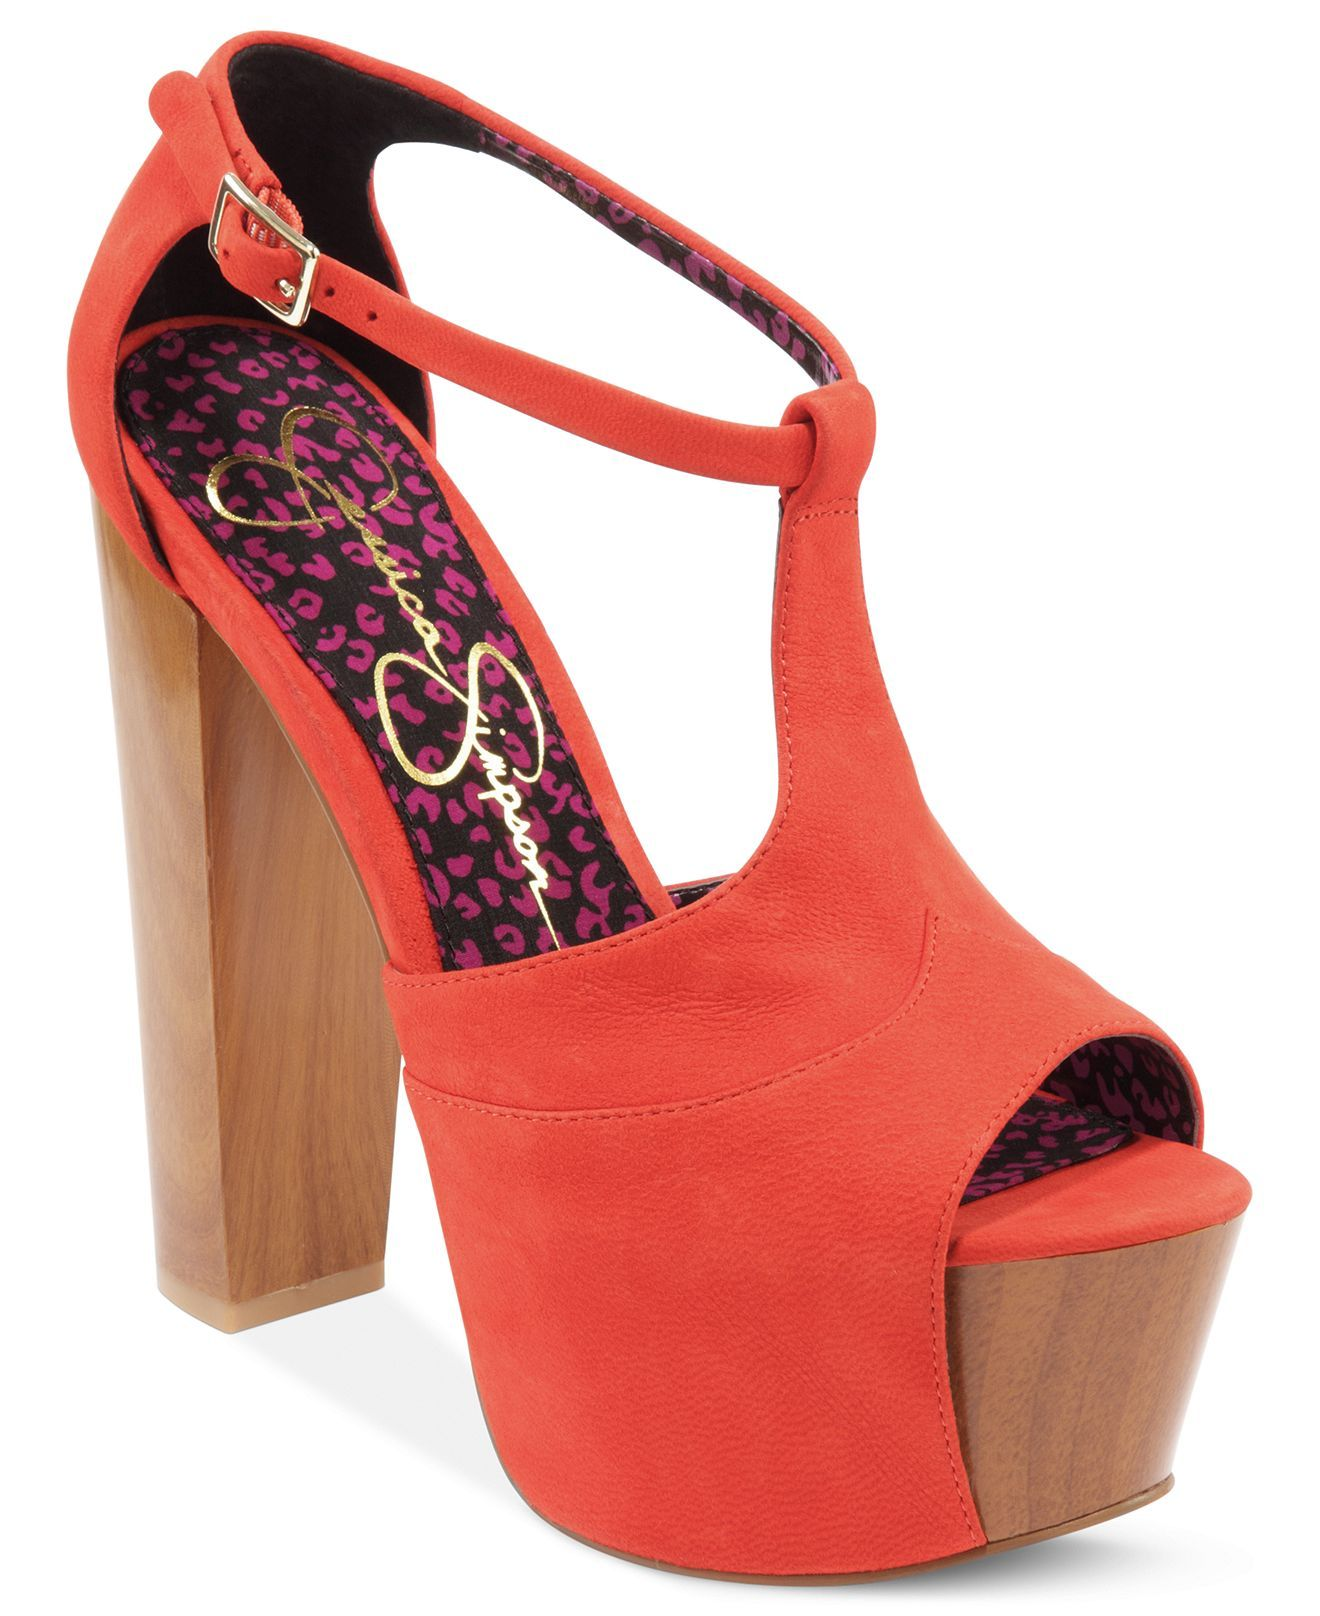 baa78c94464 jessica simpson sandals. Check list of most have shoes